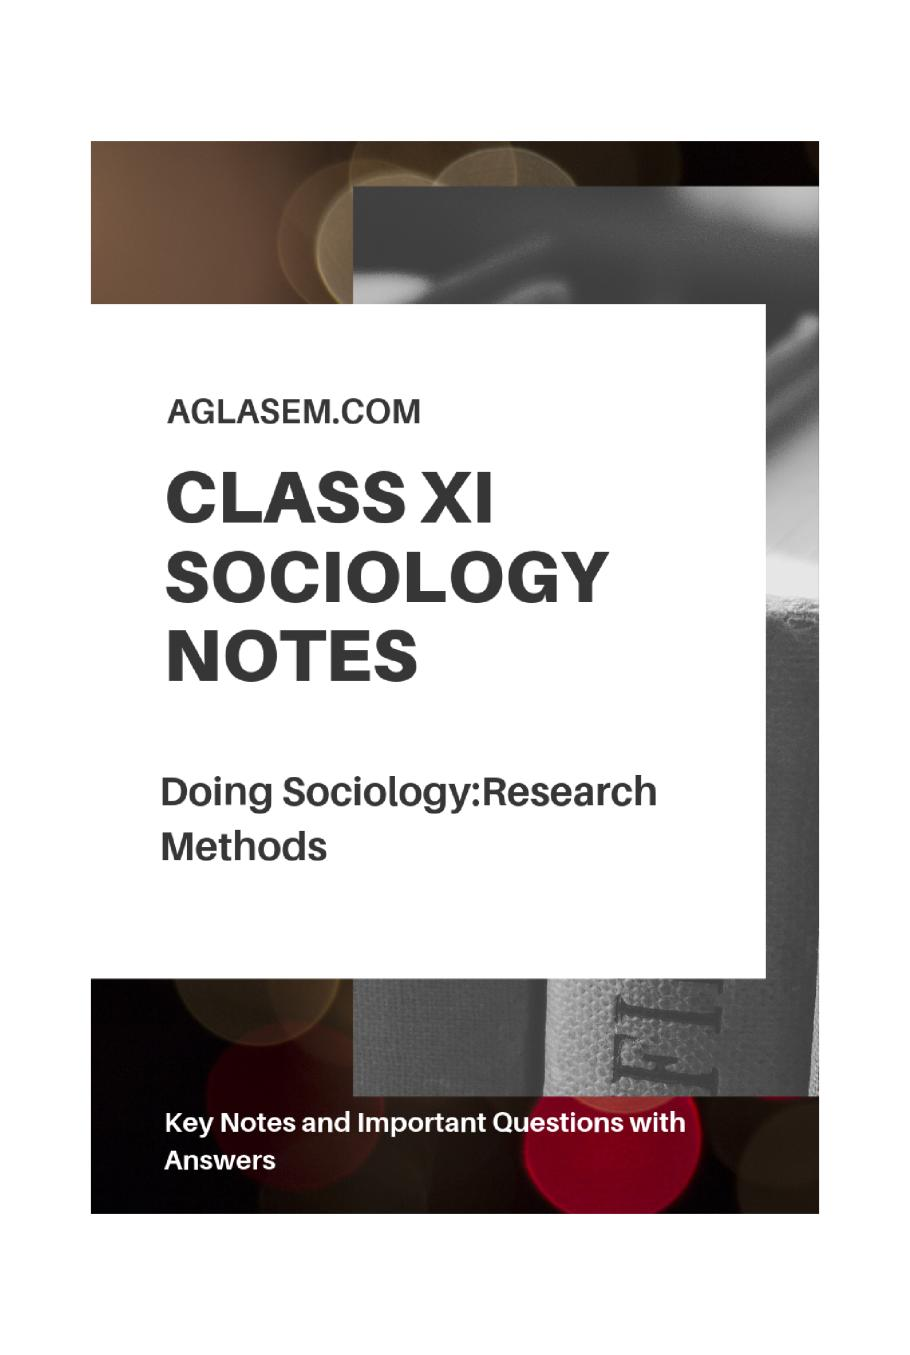 Class 11 Sociology Notes for Doing Sociology and Research Methods